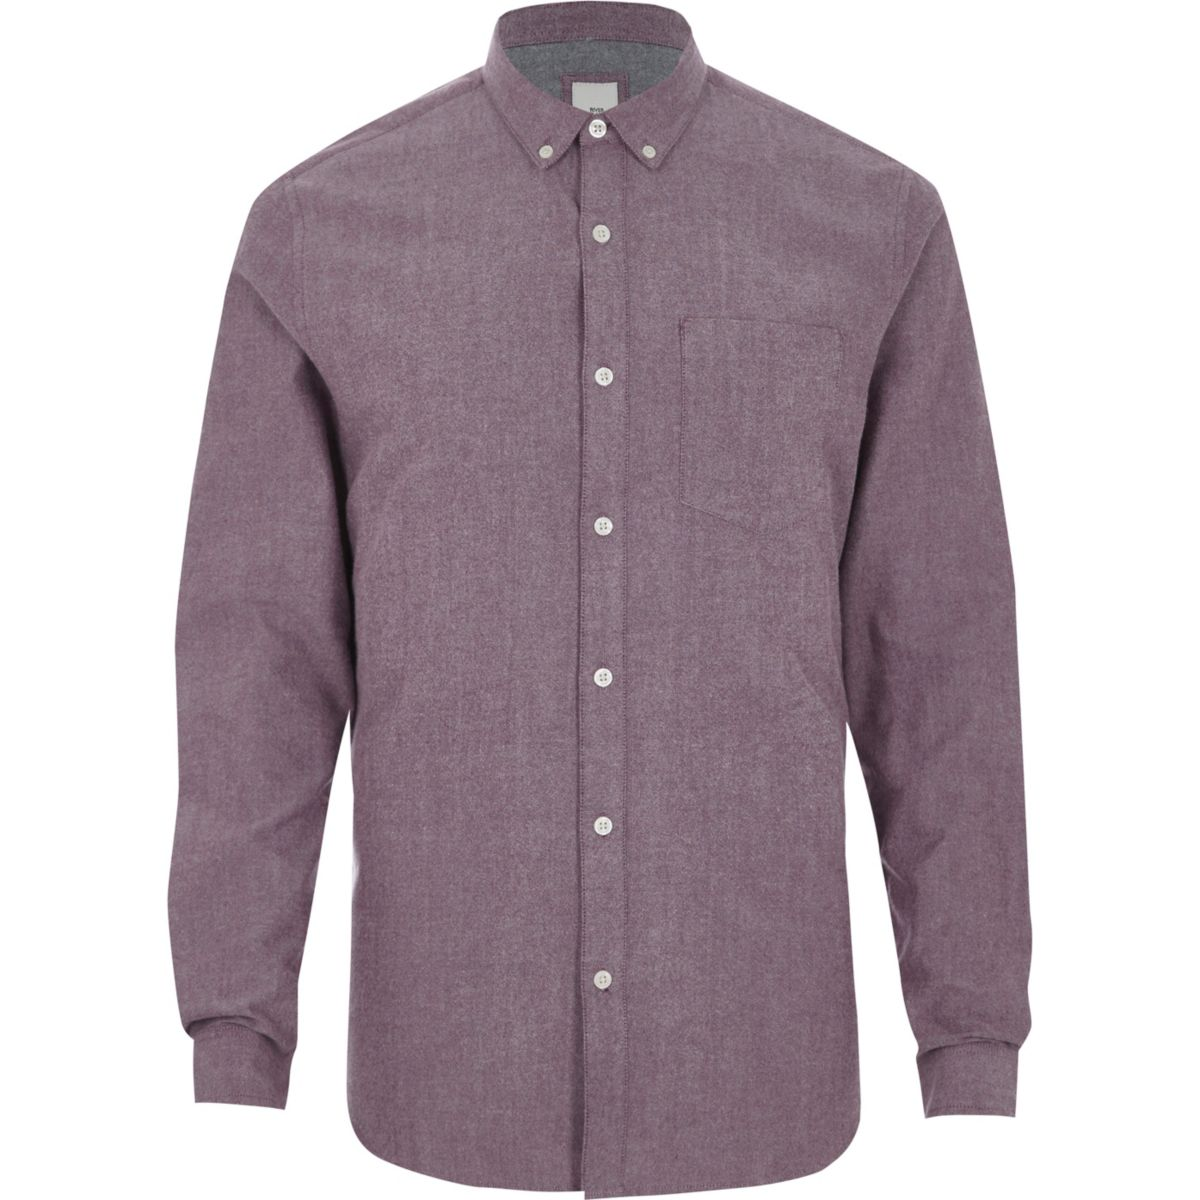 Blue button down casual oxford shirt long sleeve shirts for Oxford long sleeve button down shirt